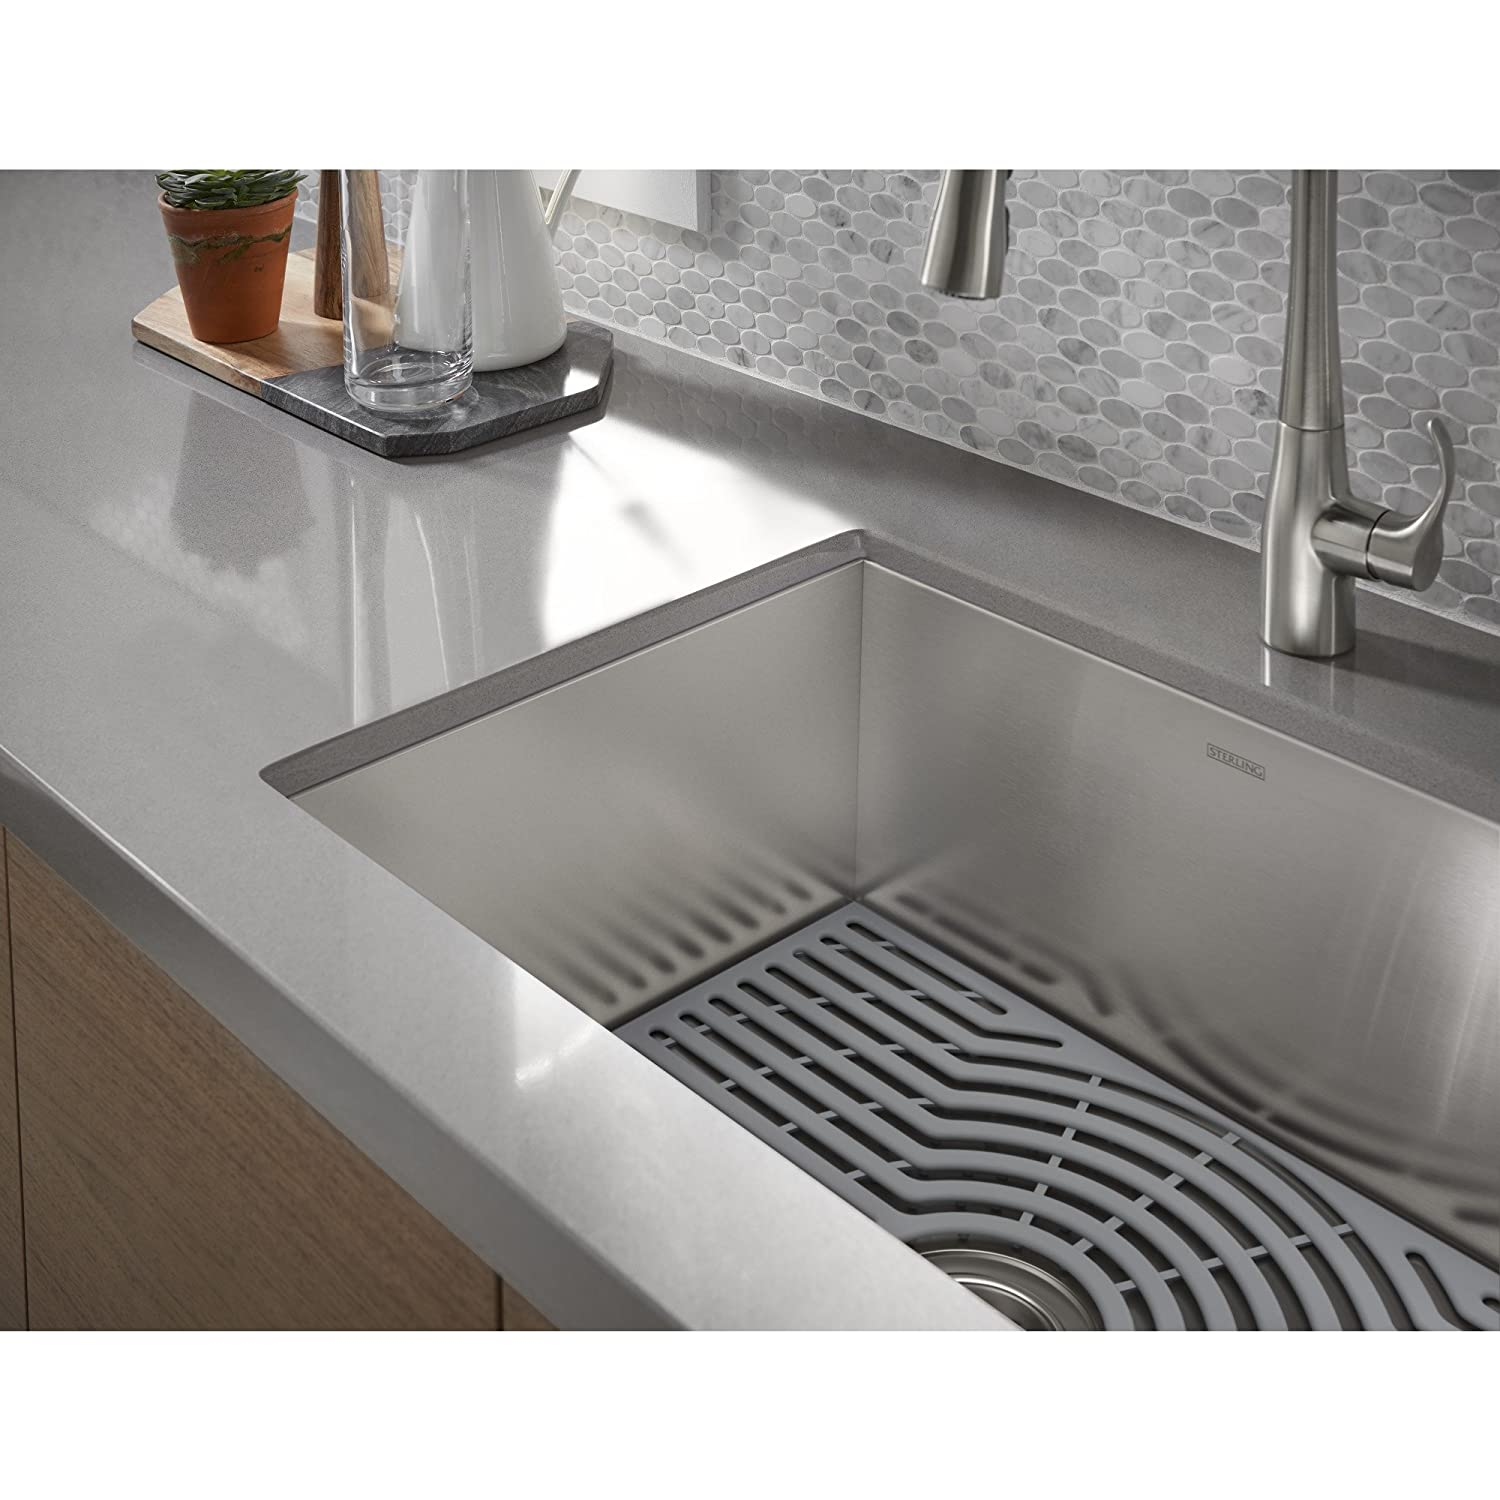 STERLING Stainless Steel a KOHLER Company K-20243-PC-NA STERLING Ludington 34 Under-Mount Single-Bowl Kitchen Sink with Accessories Apron-Front Basin